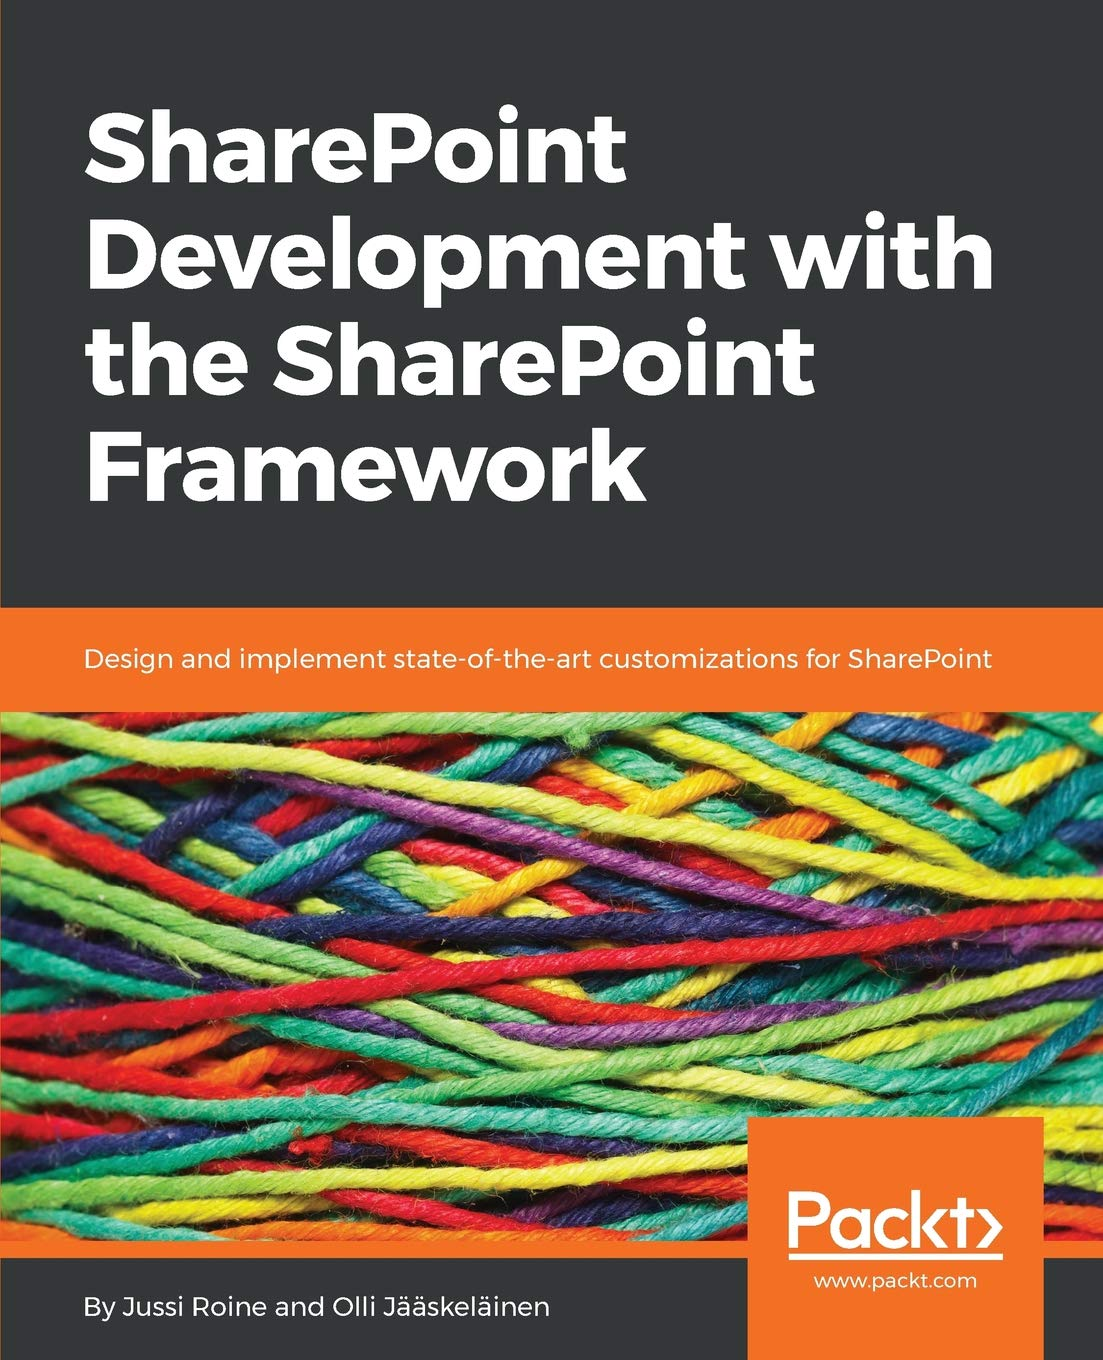 SharePoint Development with the SharePoint Framework: Design